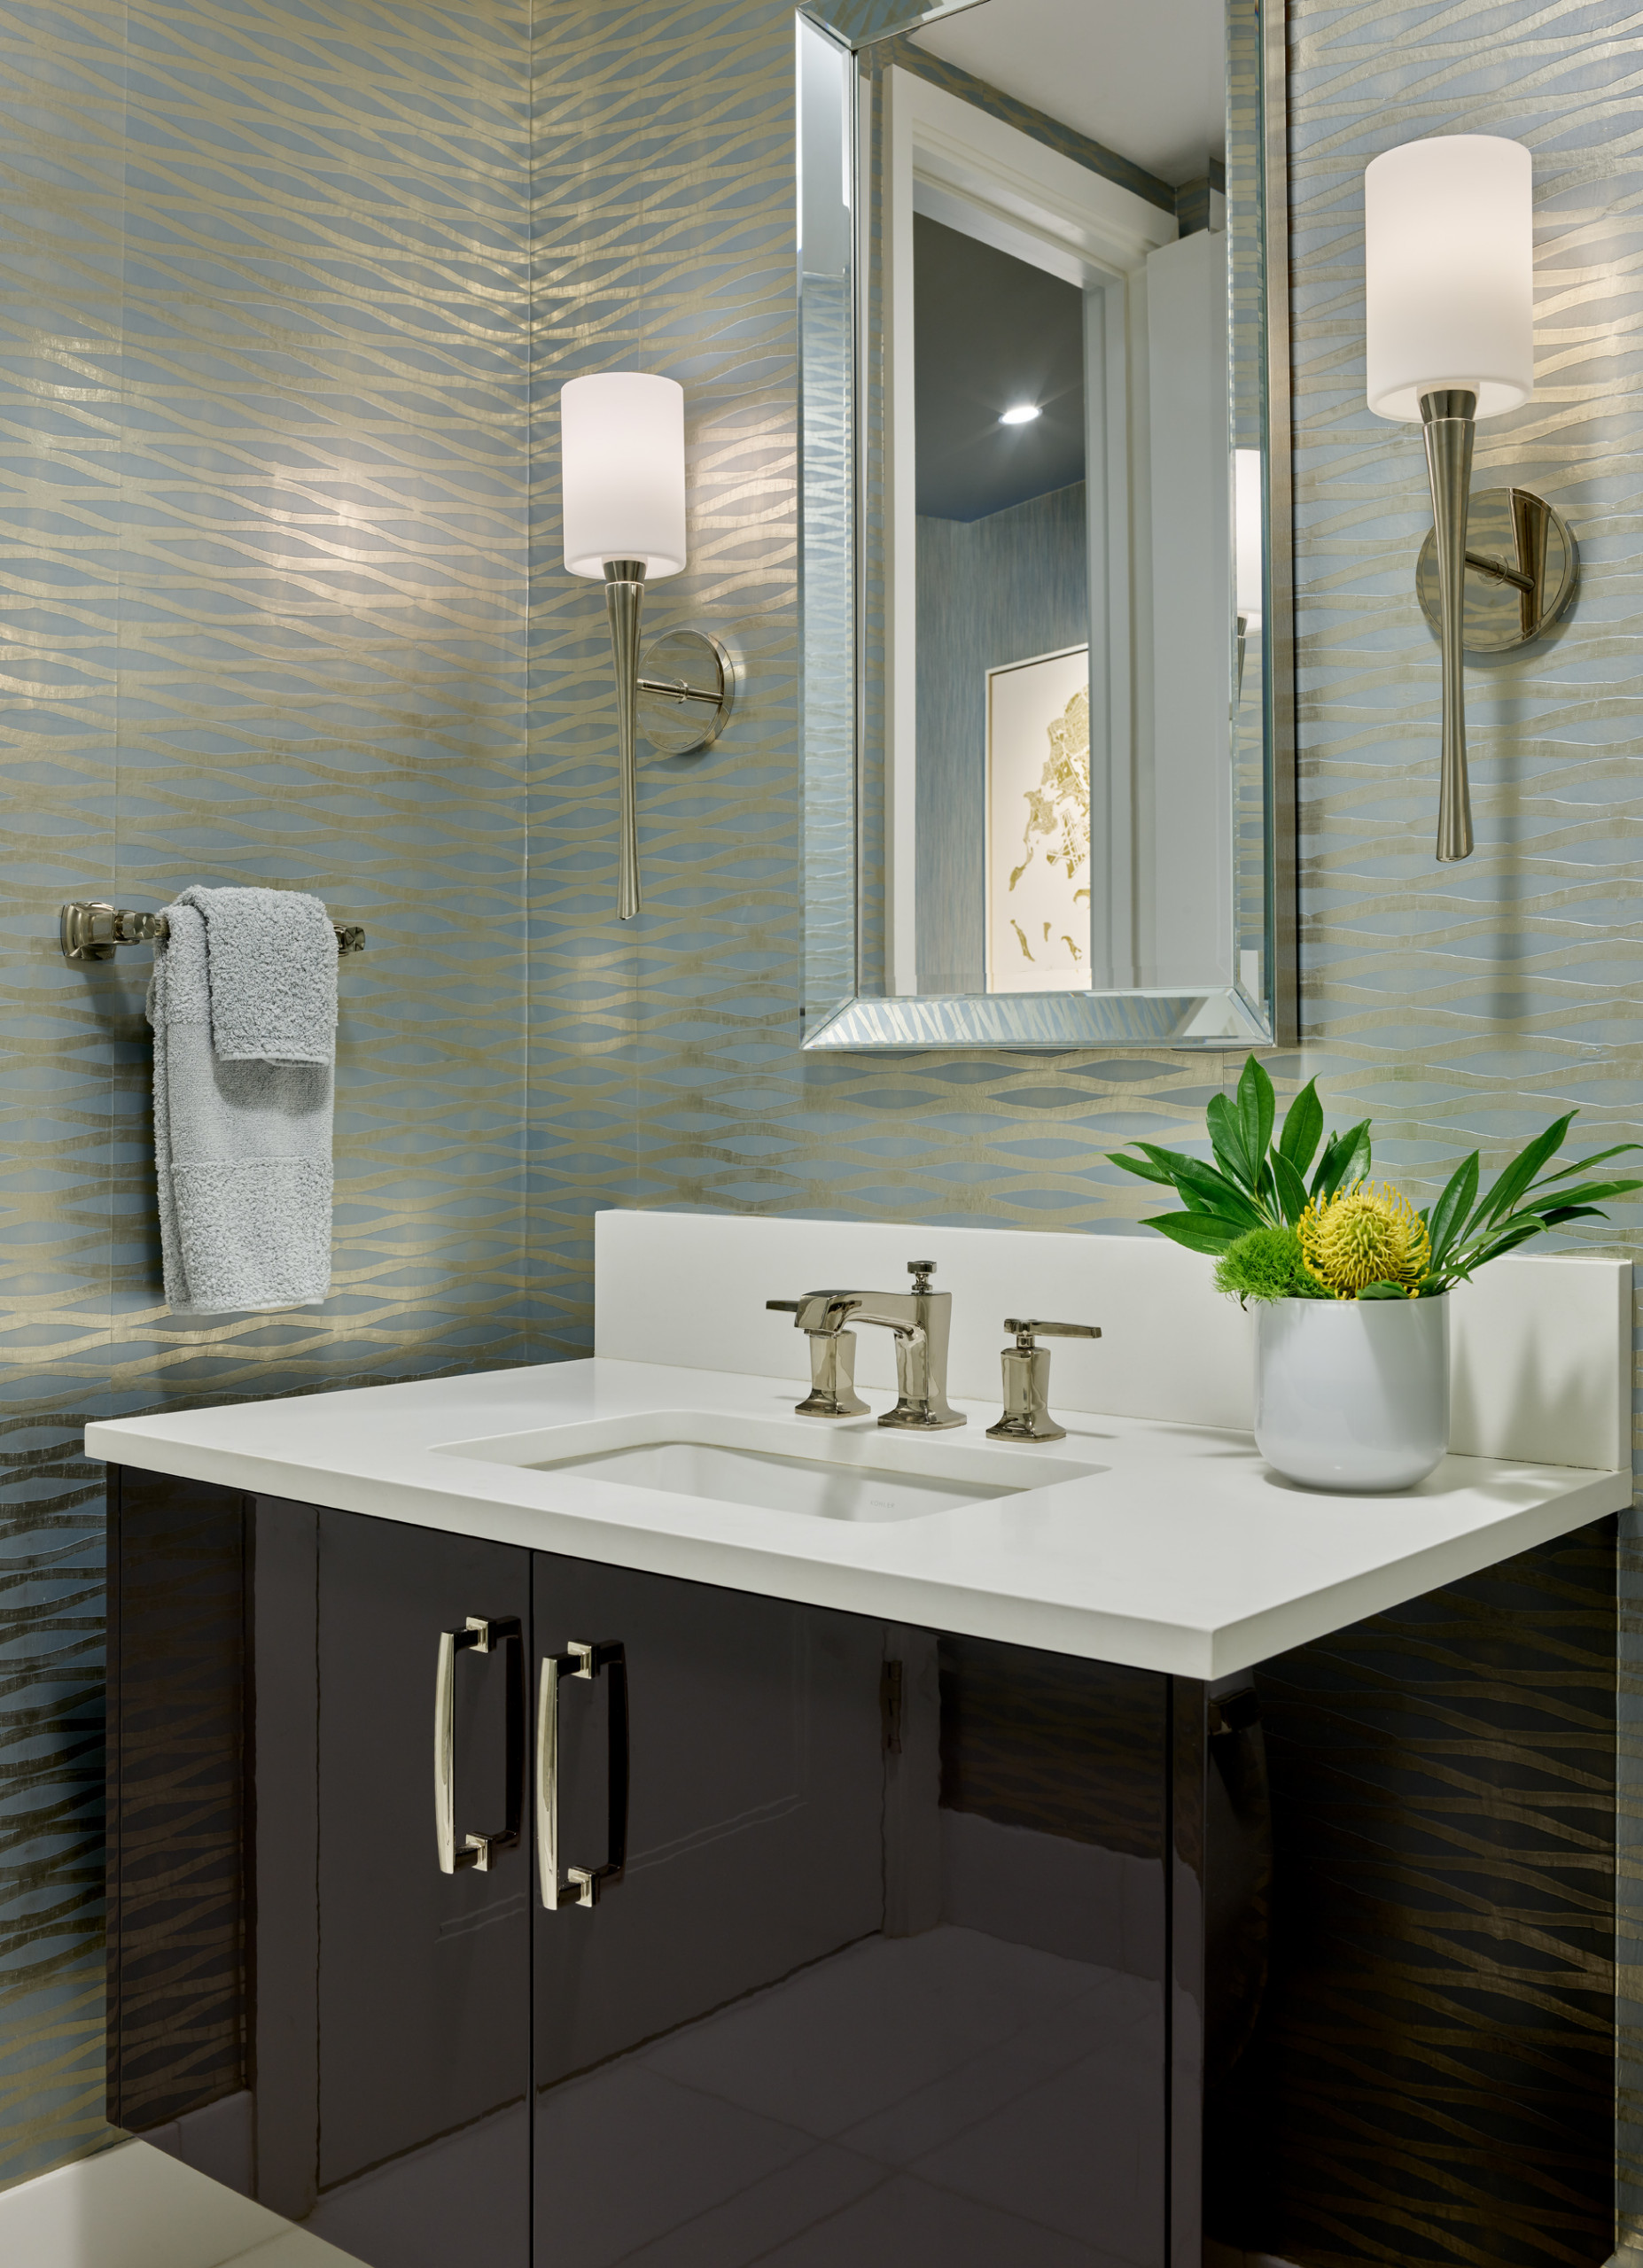 Must See Wallpaper Bathroom Pictures Ideas Before You Renovate 2020 Houzz